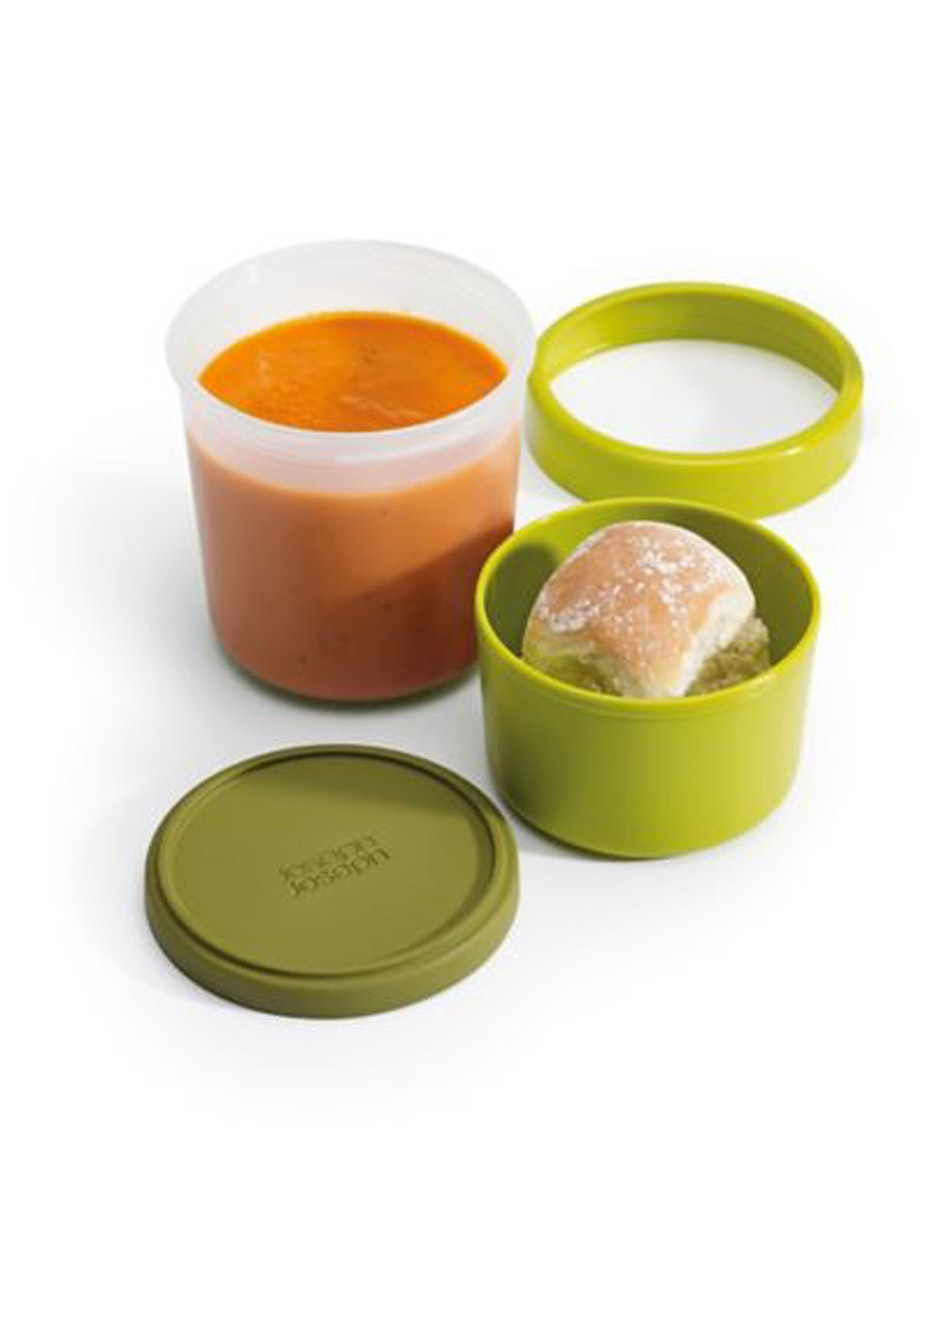 Joseph Joseph - GoEat Compact 2-in-1 soup pot - Green